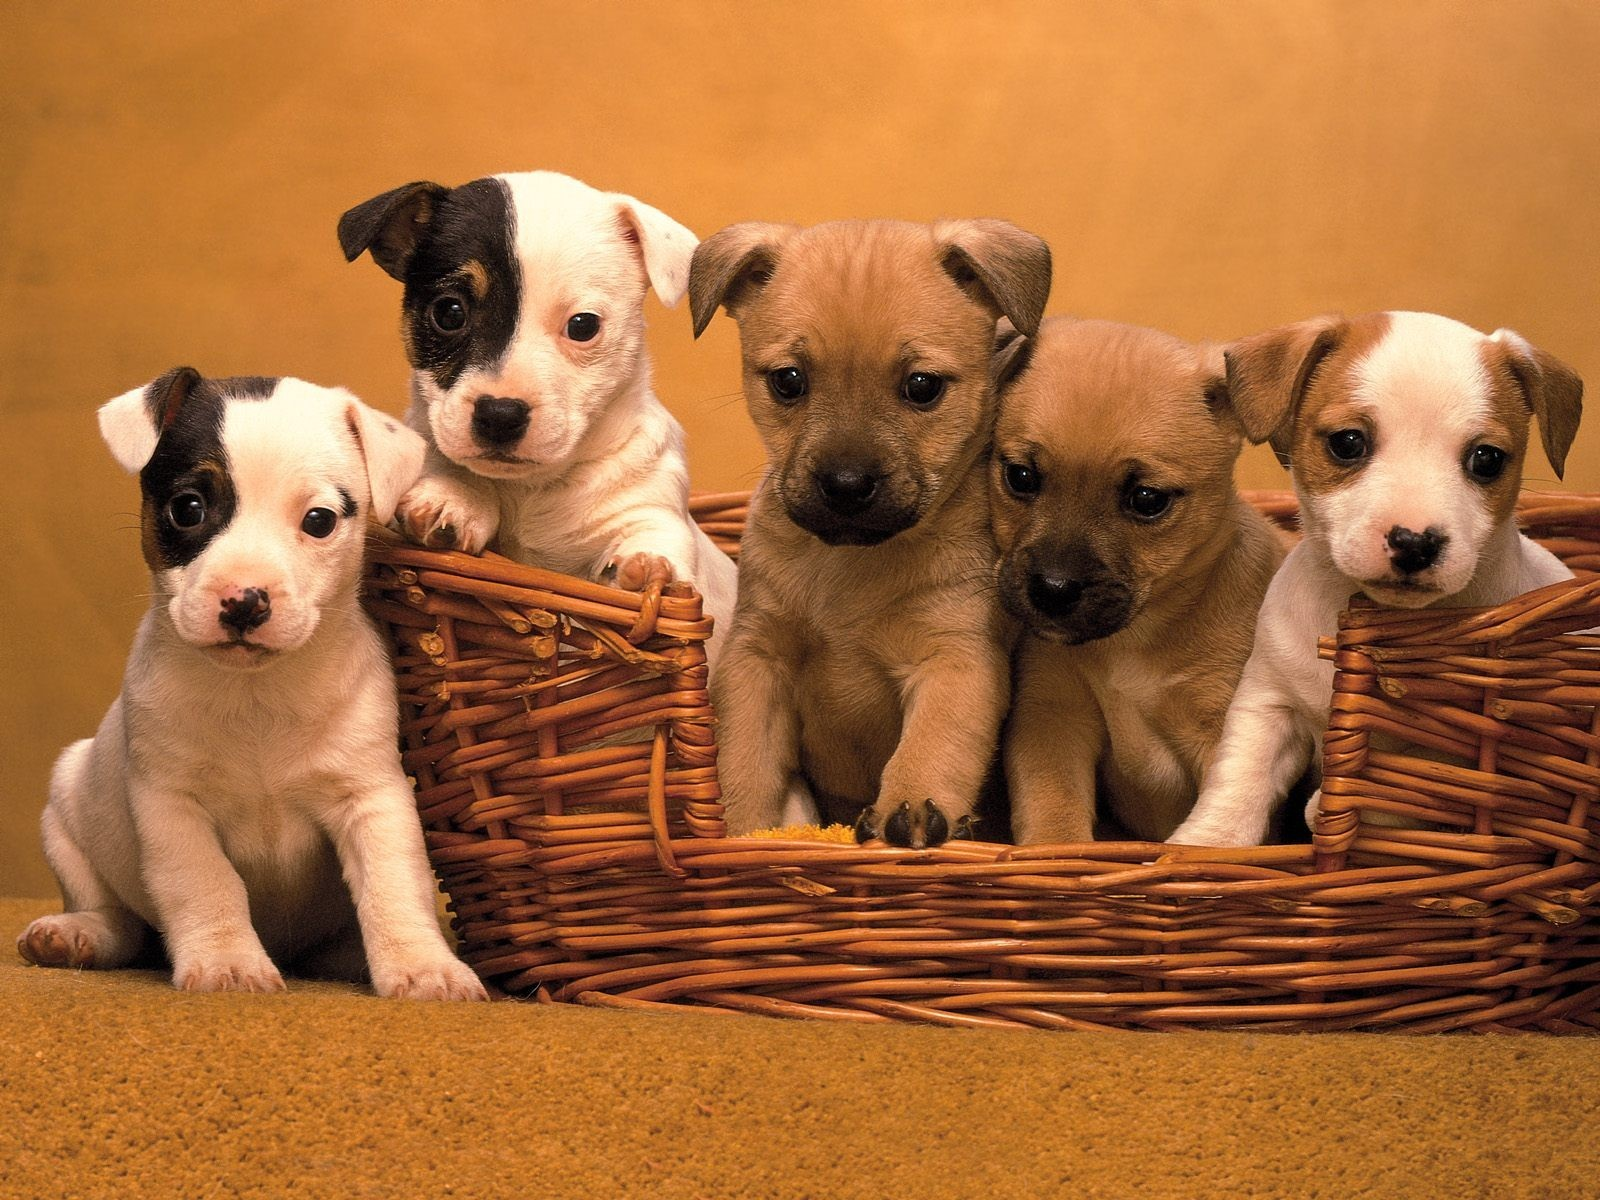 Puppies images 3-puppies...so nice! wallpaper and background ...